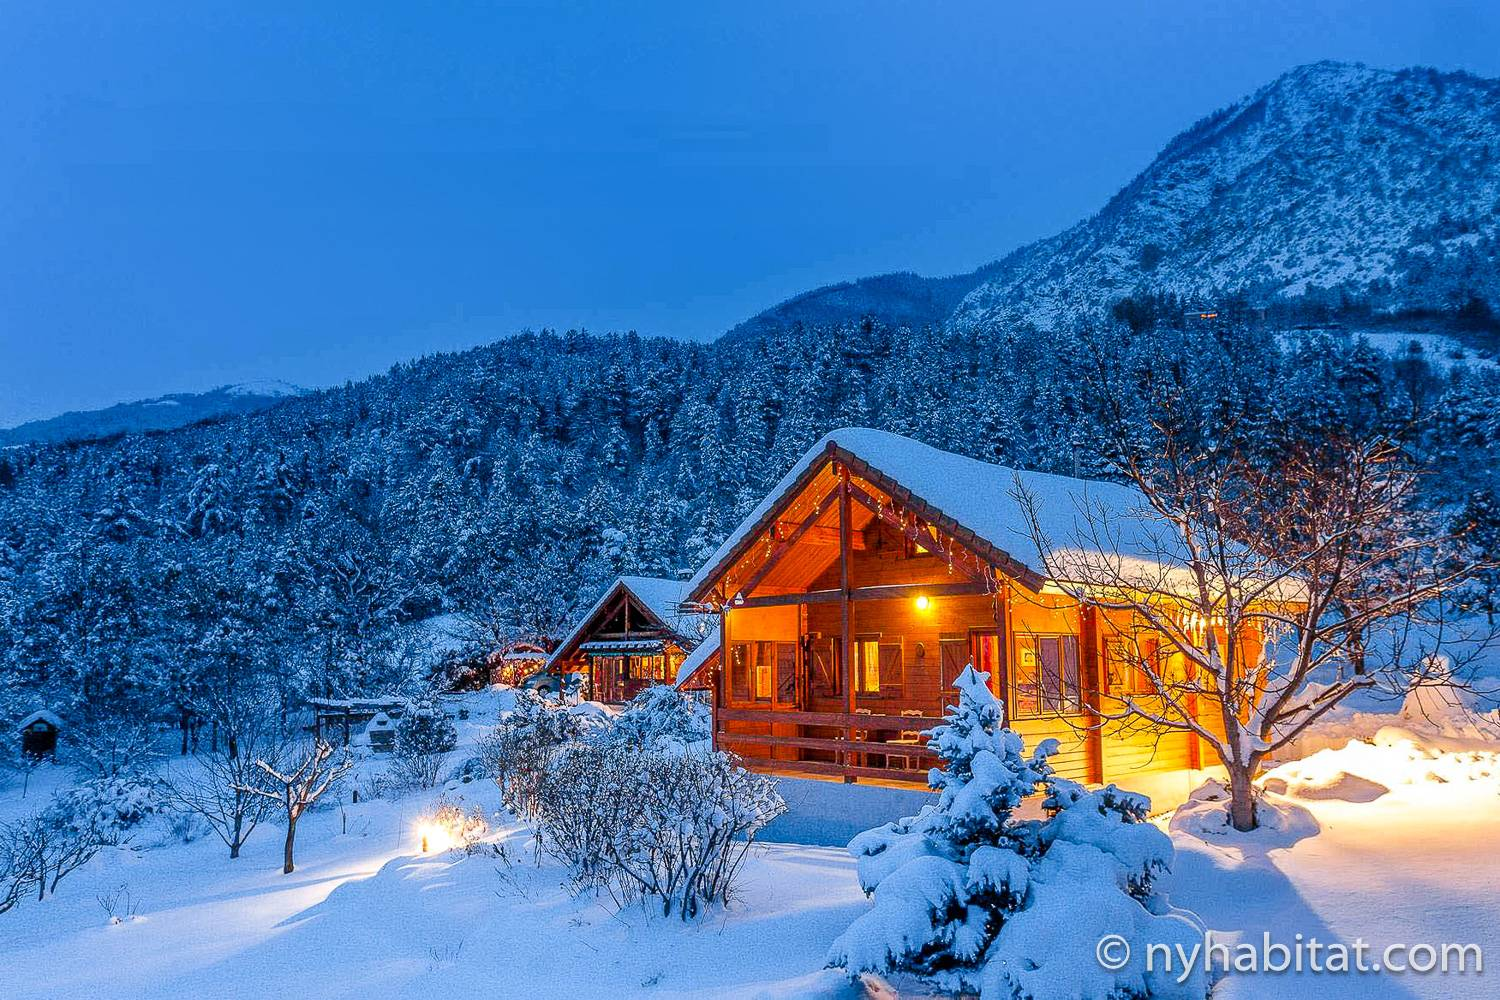 Image of exterior of PR-954 vacation rental chalet at night and covered in snow.